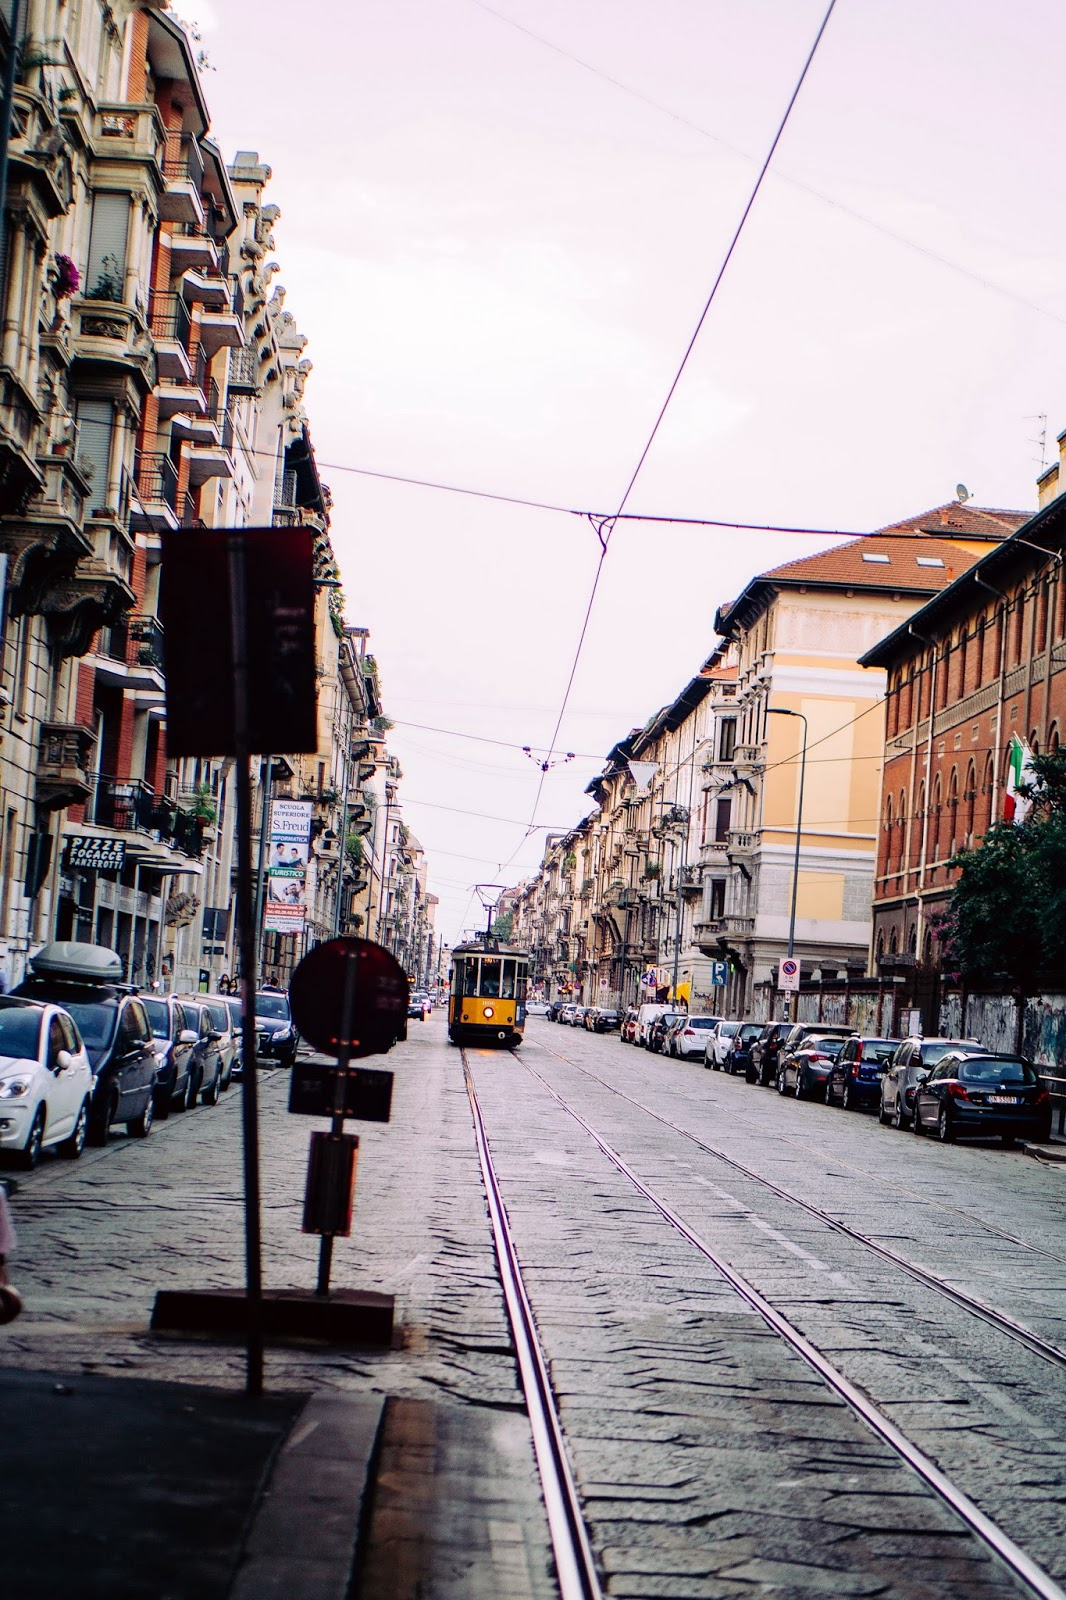 Milan Italy Street and Tram